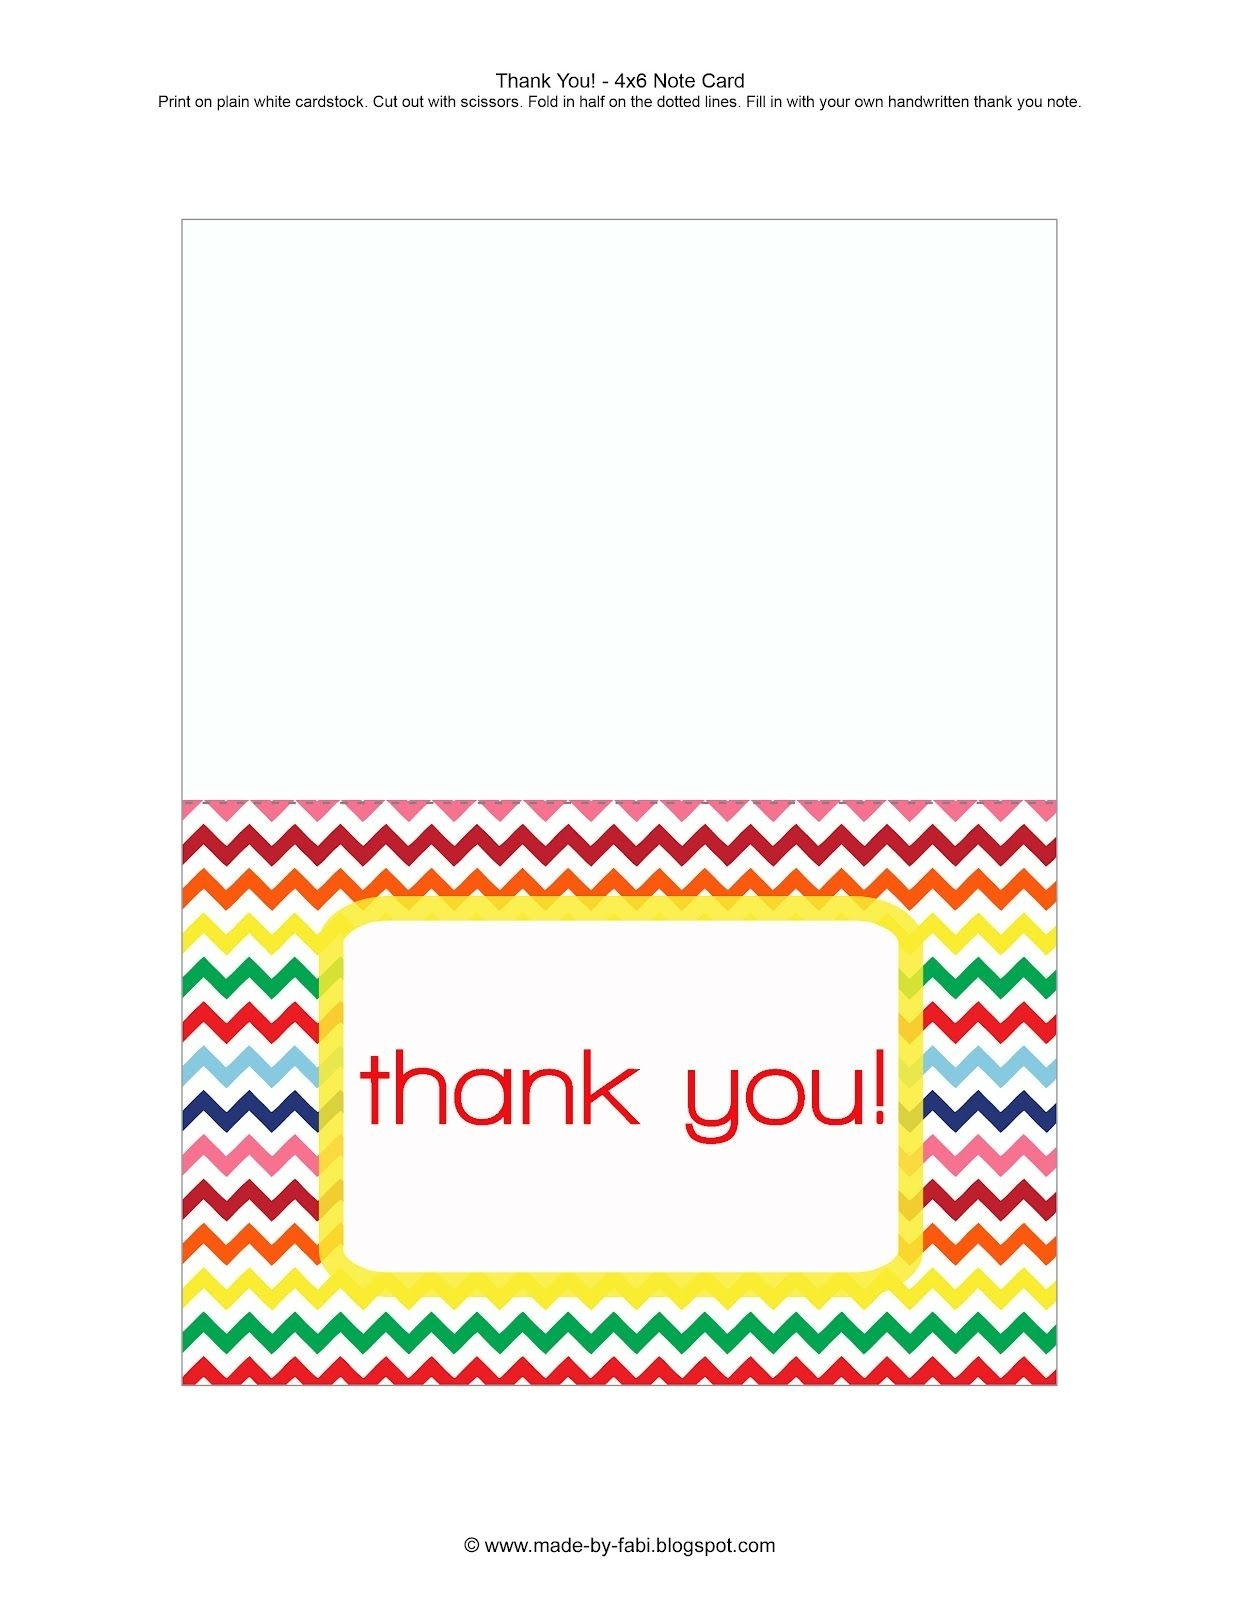 Printable Thank You Cards For Students - Printable Cards - Military Thank You Cards Free Printable